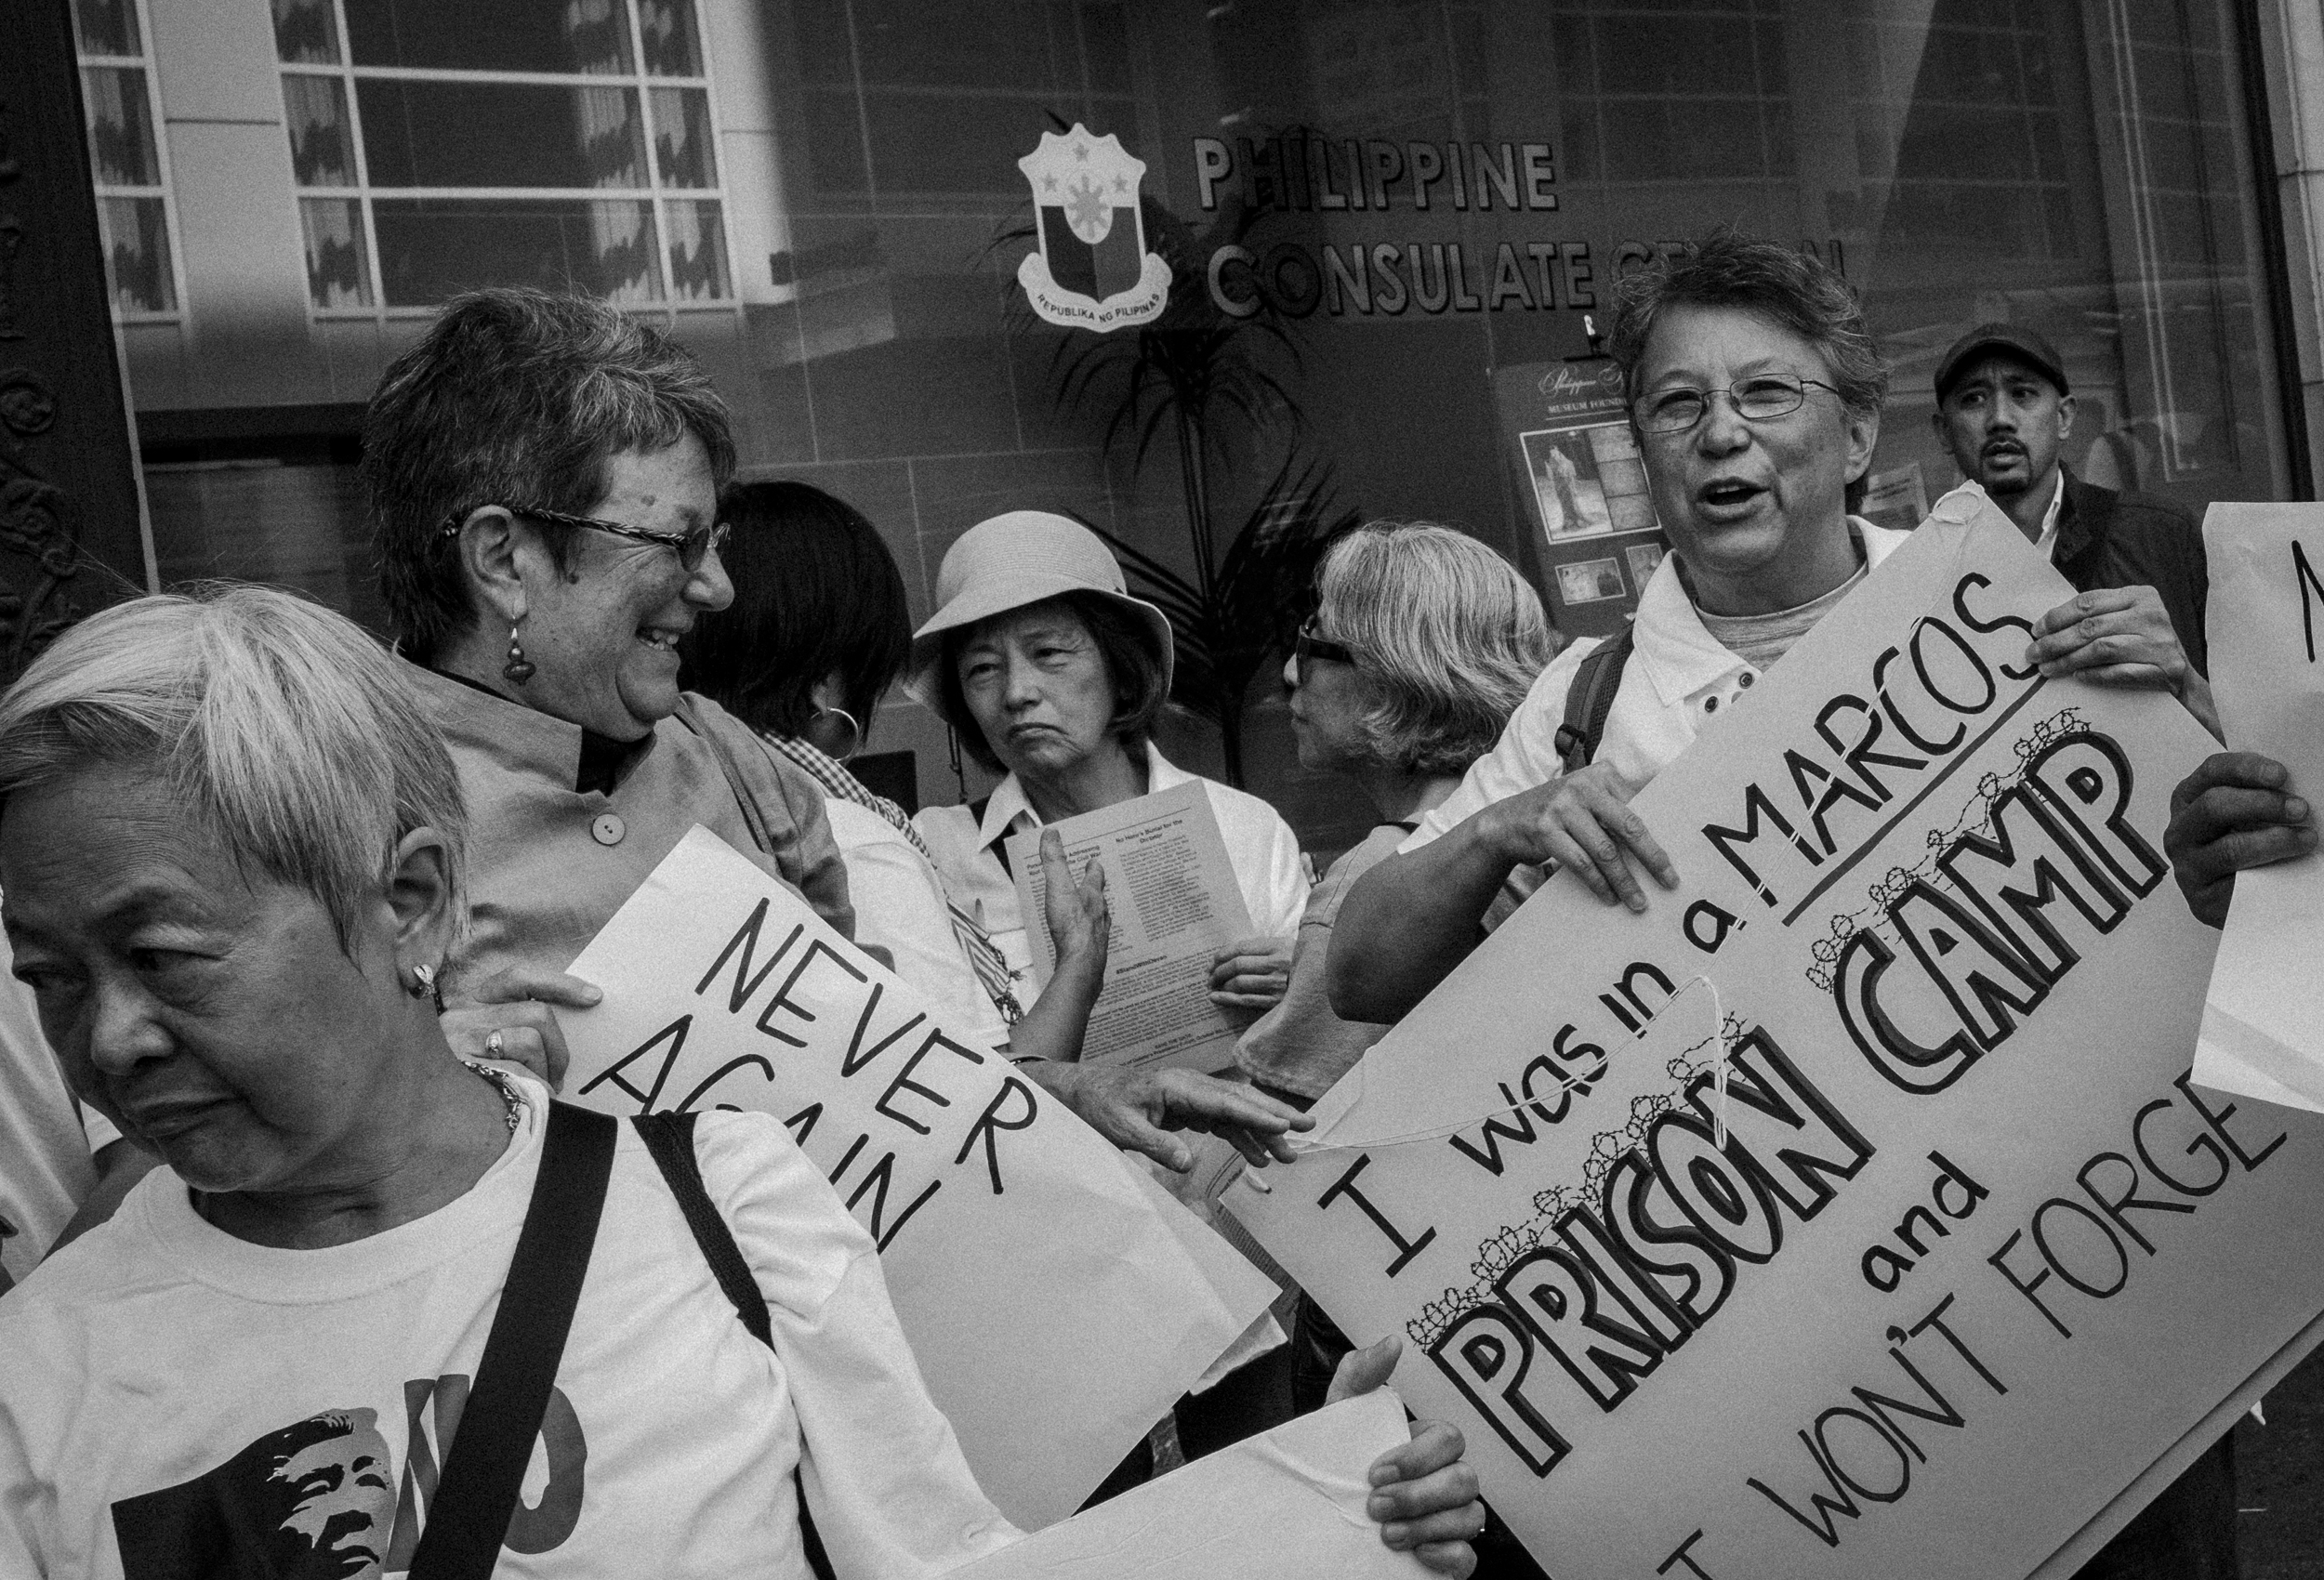 DEPORTED. Melinda Paras, who was deported after being detained during Martial Law, and Elaine Elinson, co-author of Development Debacle that exposed how the World Bank and IMF economic prescriptions failed during the dictatorship. Photo by Rick Rocamora